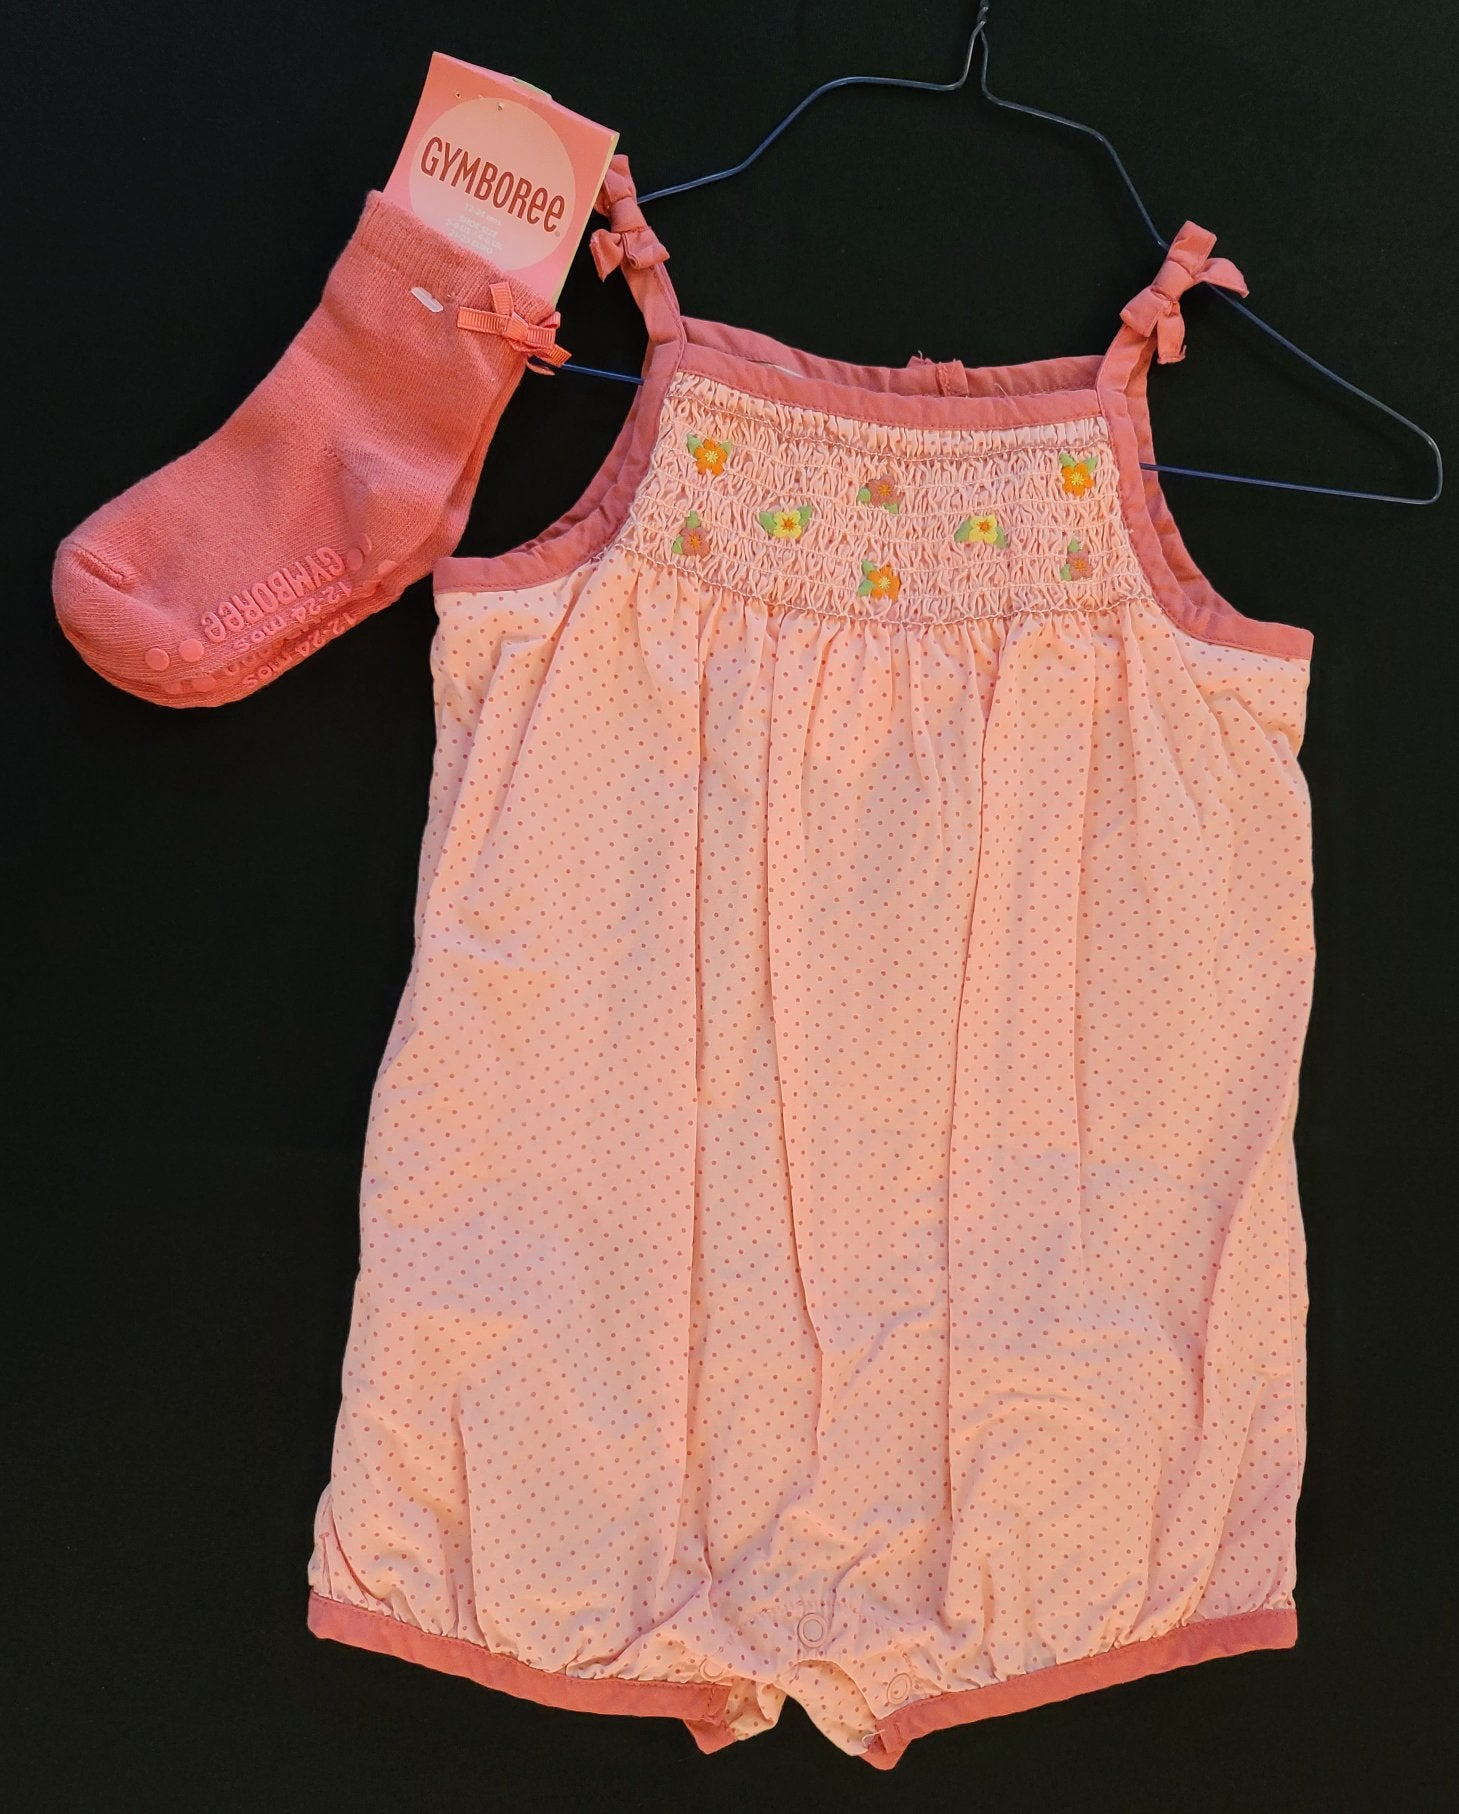 GYMBOREE 2 pc set - summer romper & *NWT* socks; Infant girls Size 18-24 months